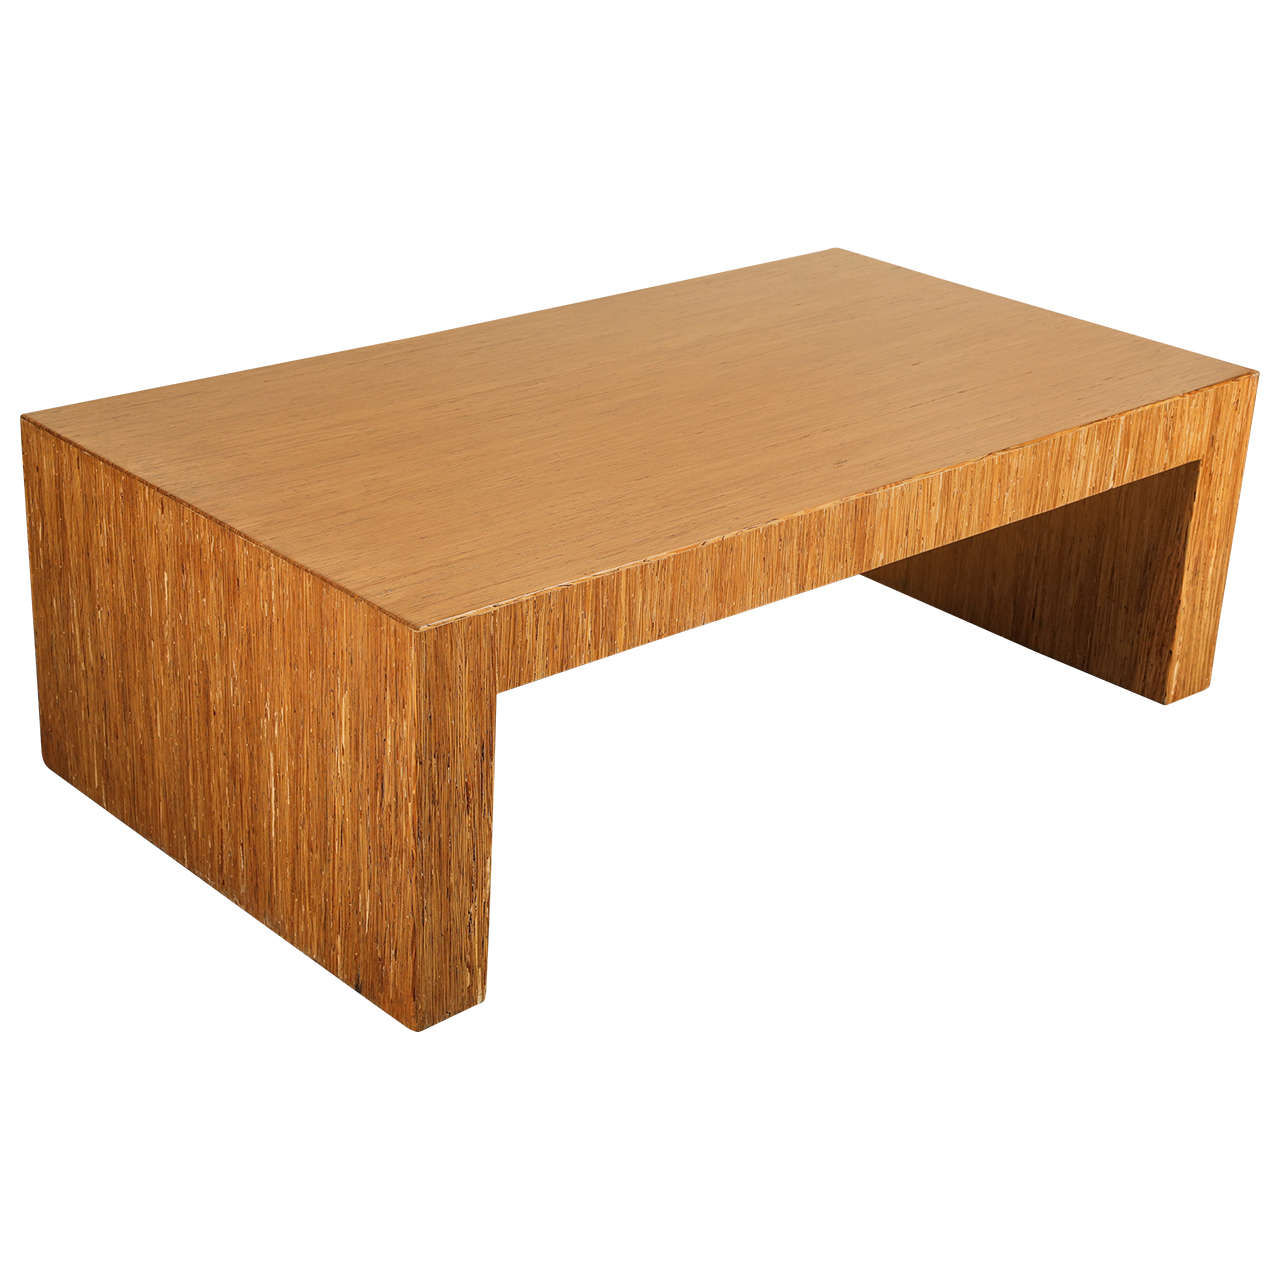 Great Simple Minimalist Coffee Table With Striated Wood Veneer 1